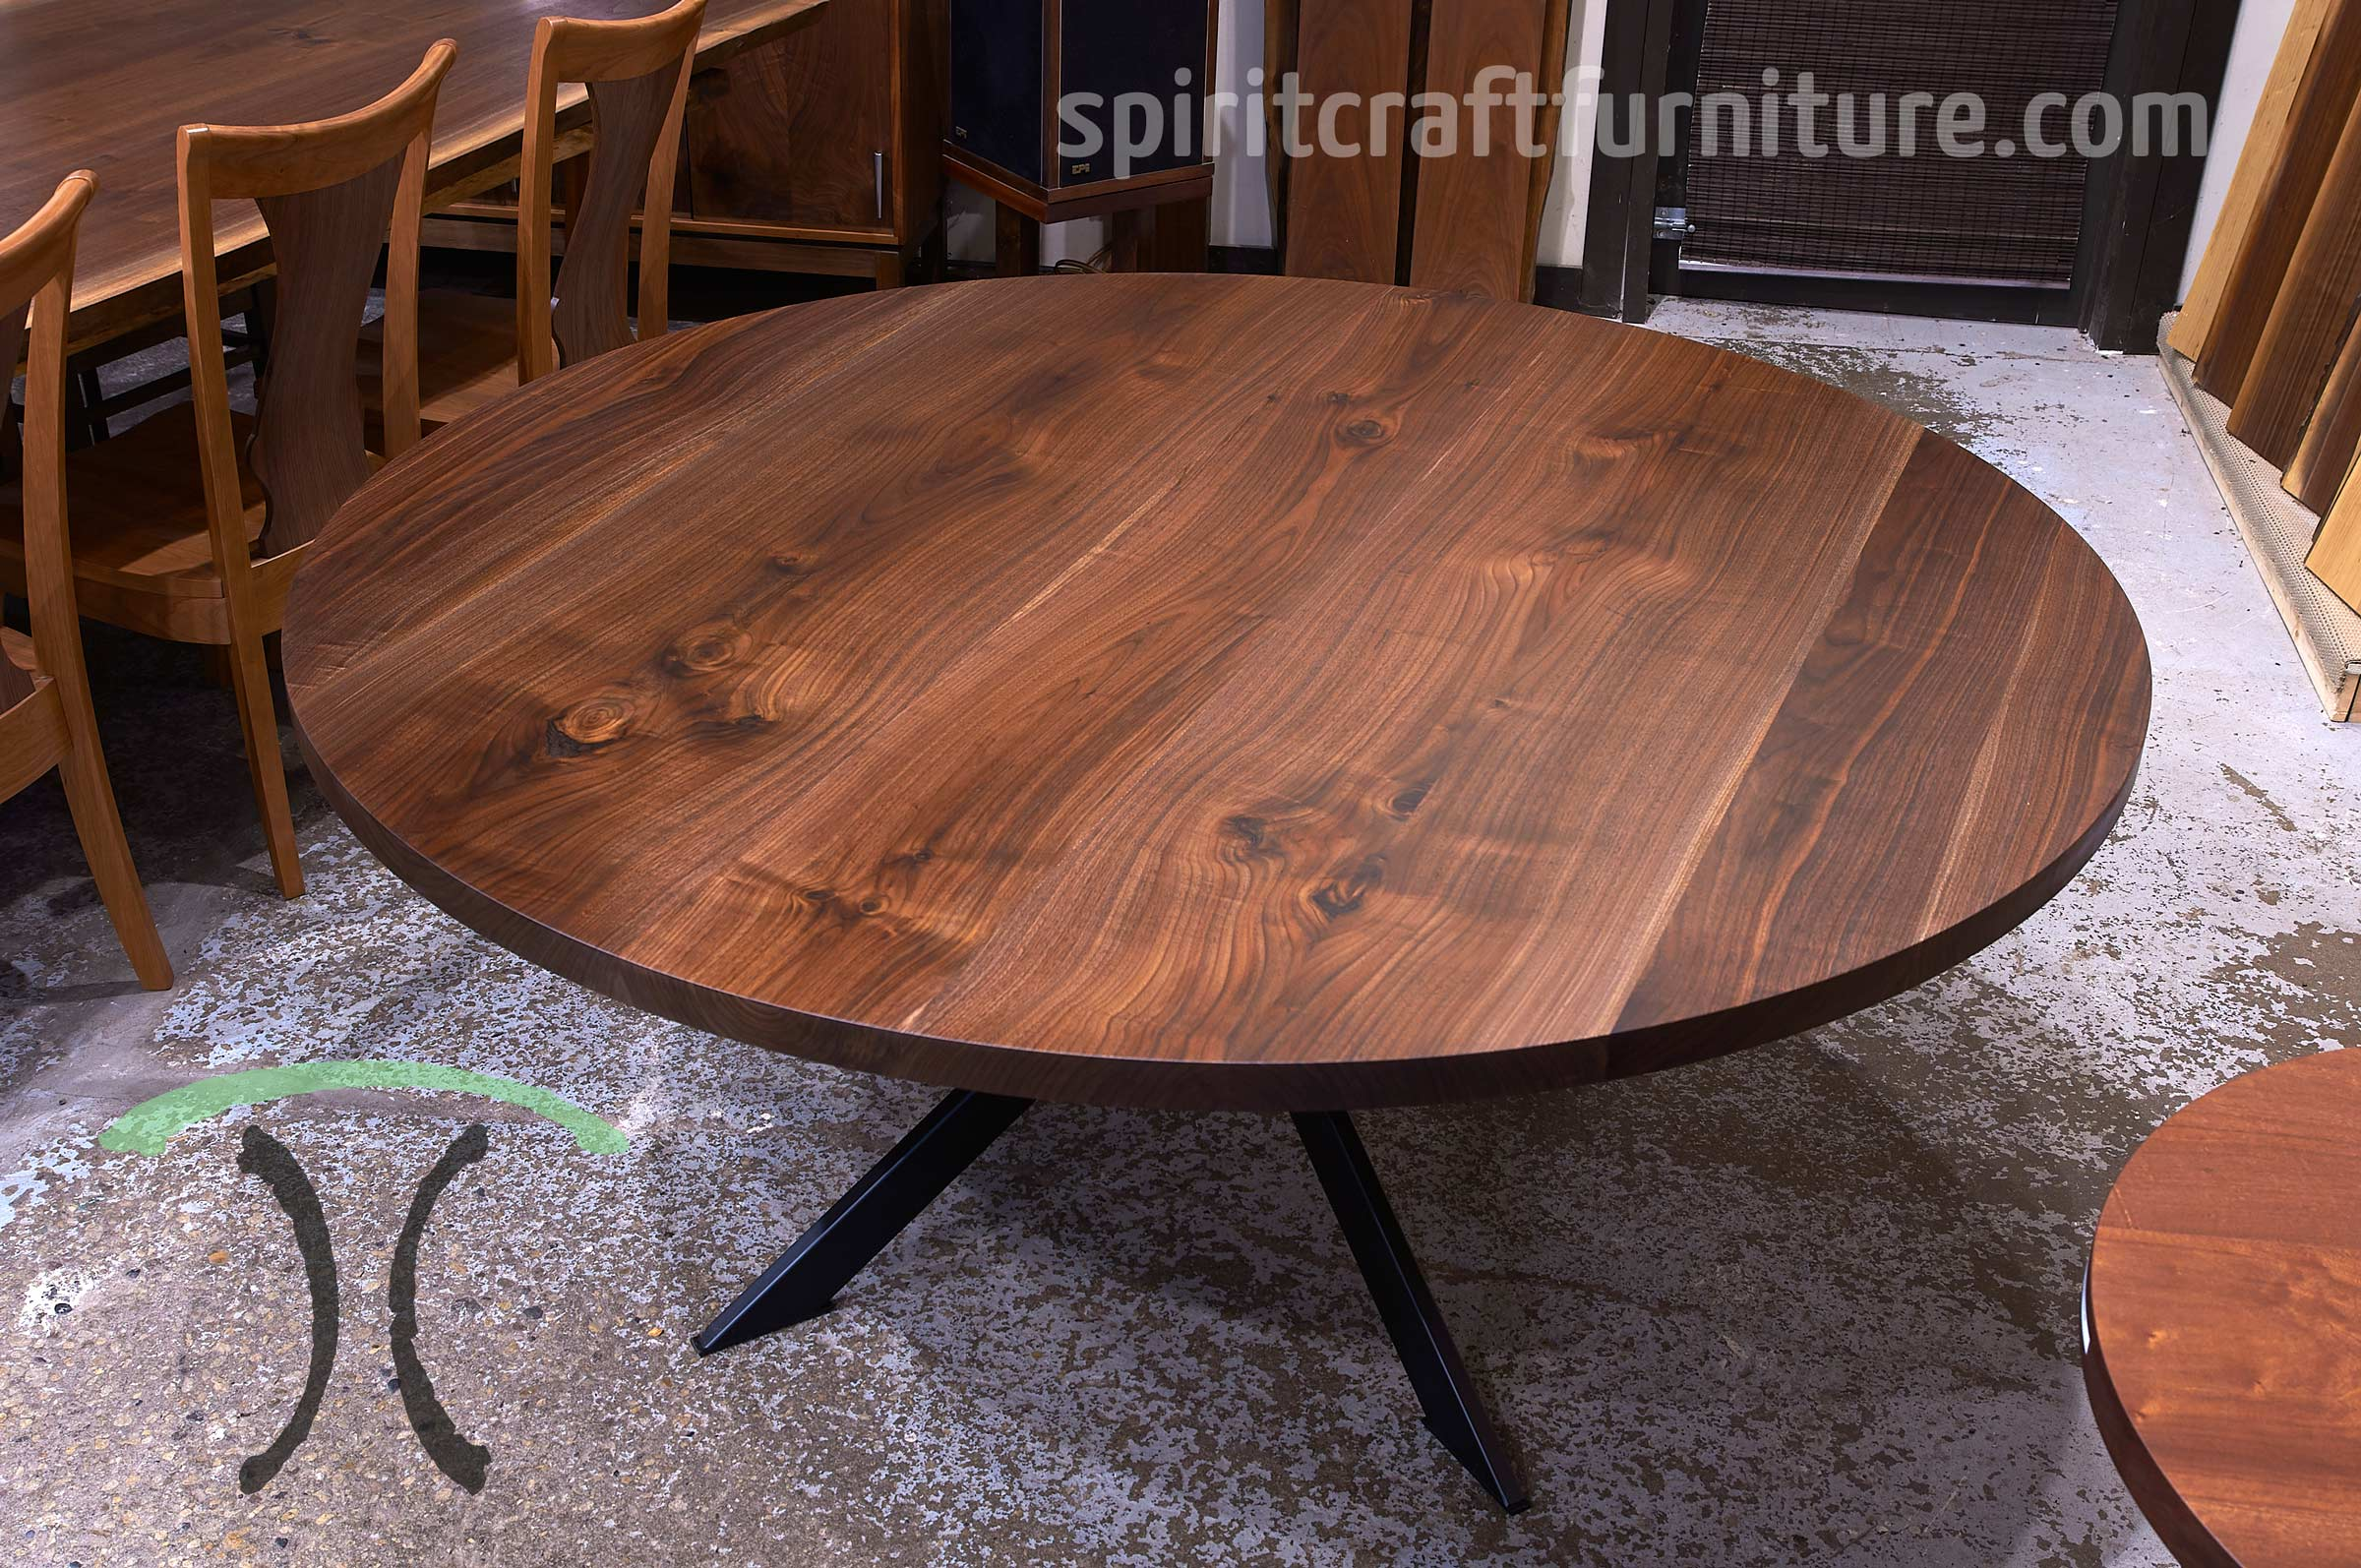 Custom made solid wood round Black Walnut table top on welded steel table base handcrafted for Highland Park interior designer by spiritcraft furniture, dundee, il.